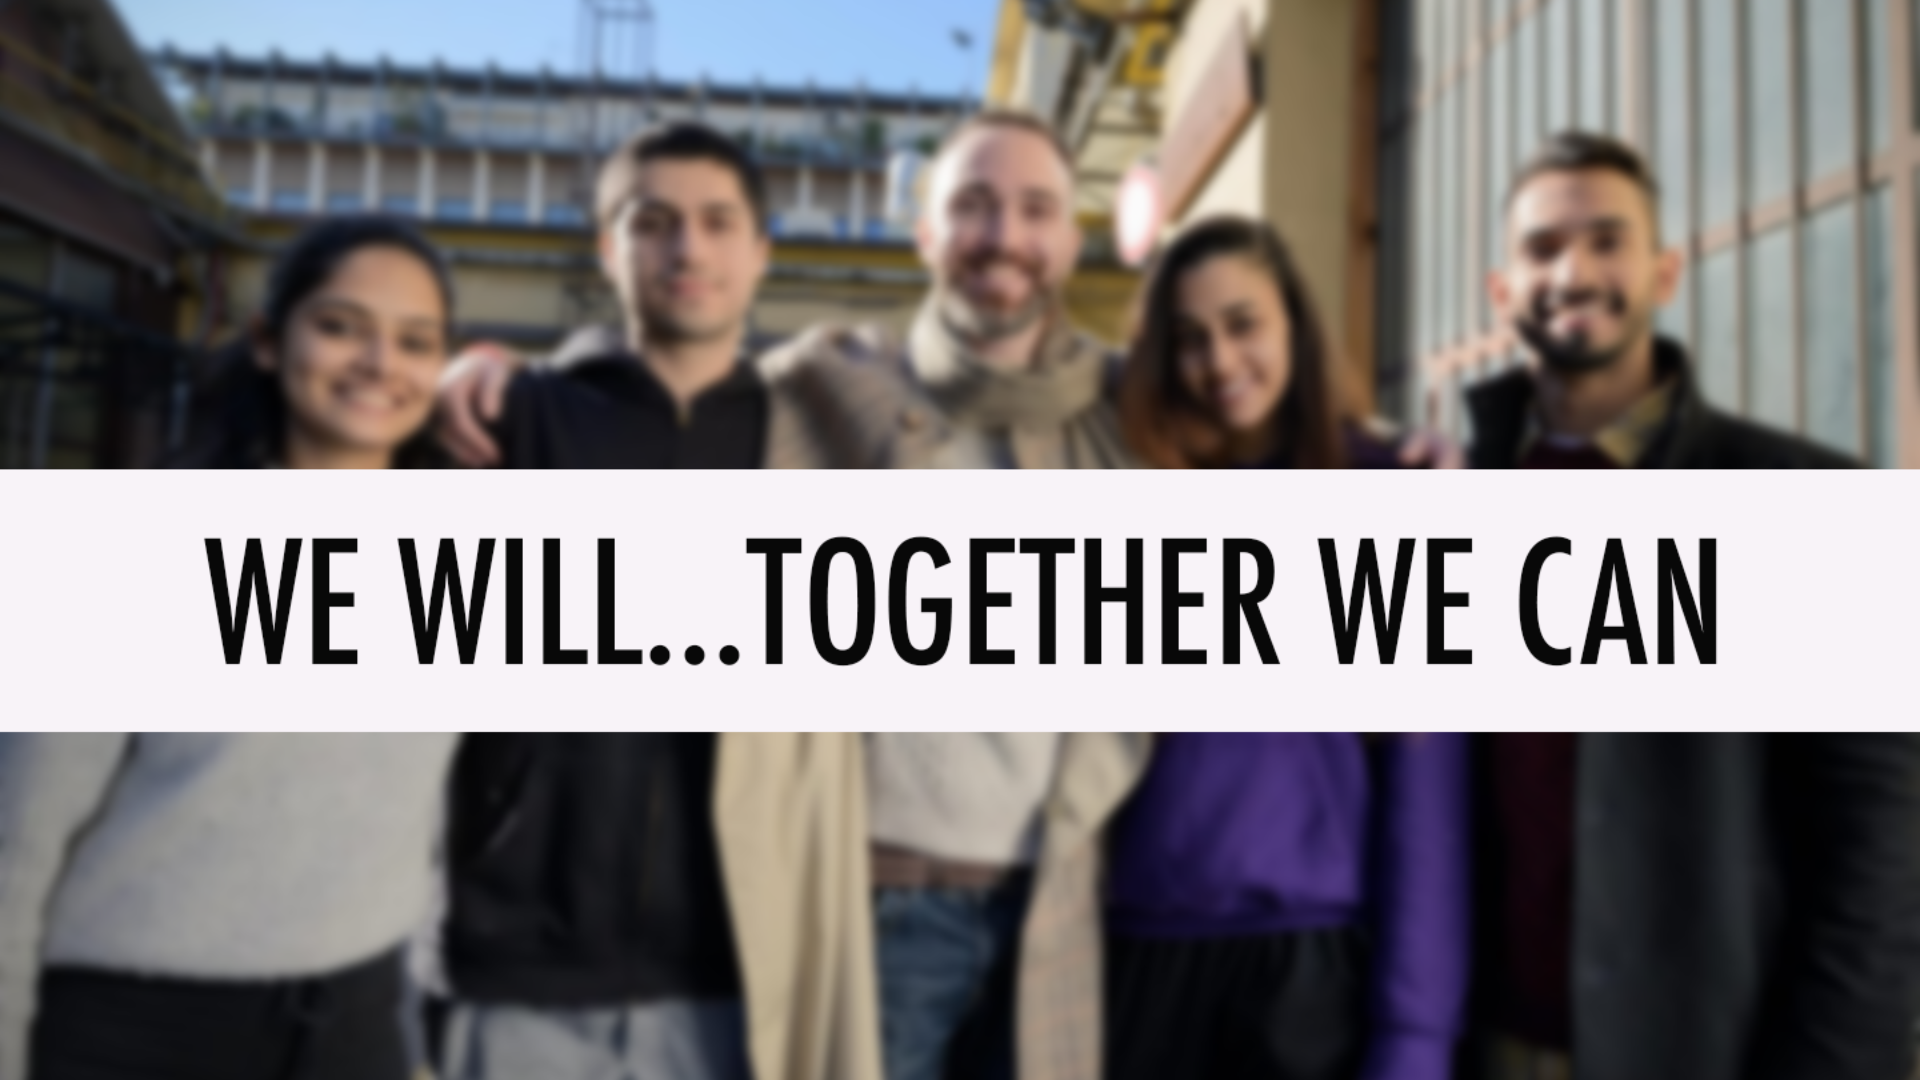 WE WILL...TOGETHER WE CAN!